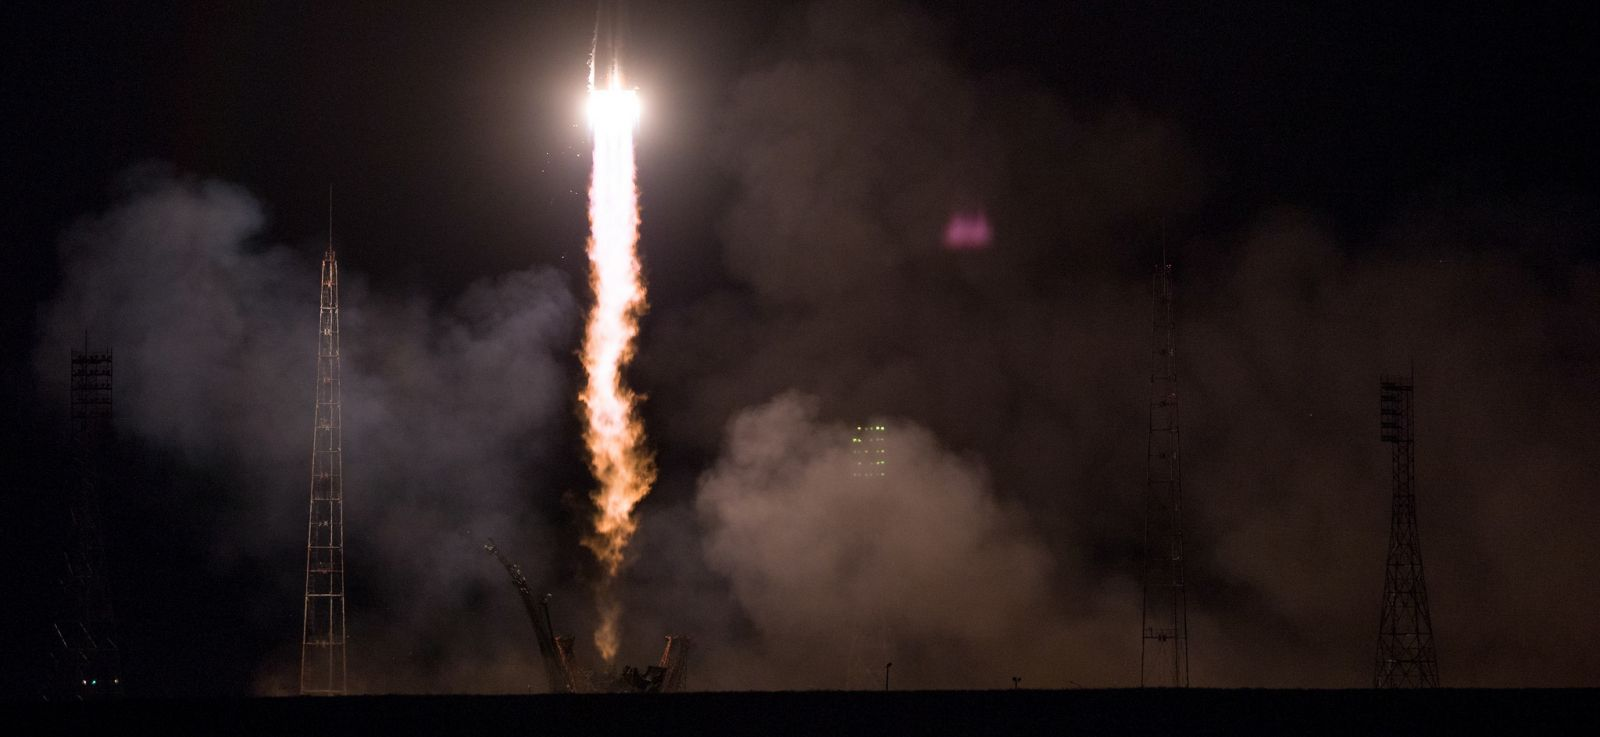 The crew of Soyuz MS-08 launches skyward to begin its trek to the International Space Station. Photo Credit: Joel Kowsky / NASA